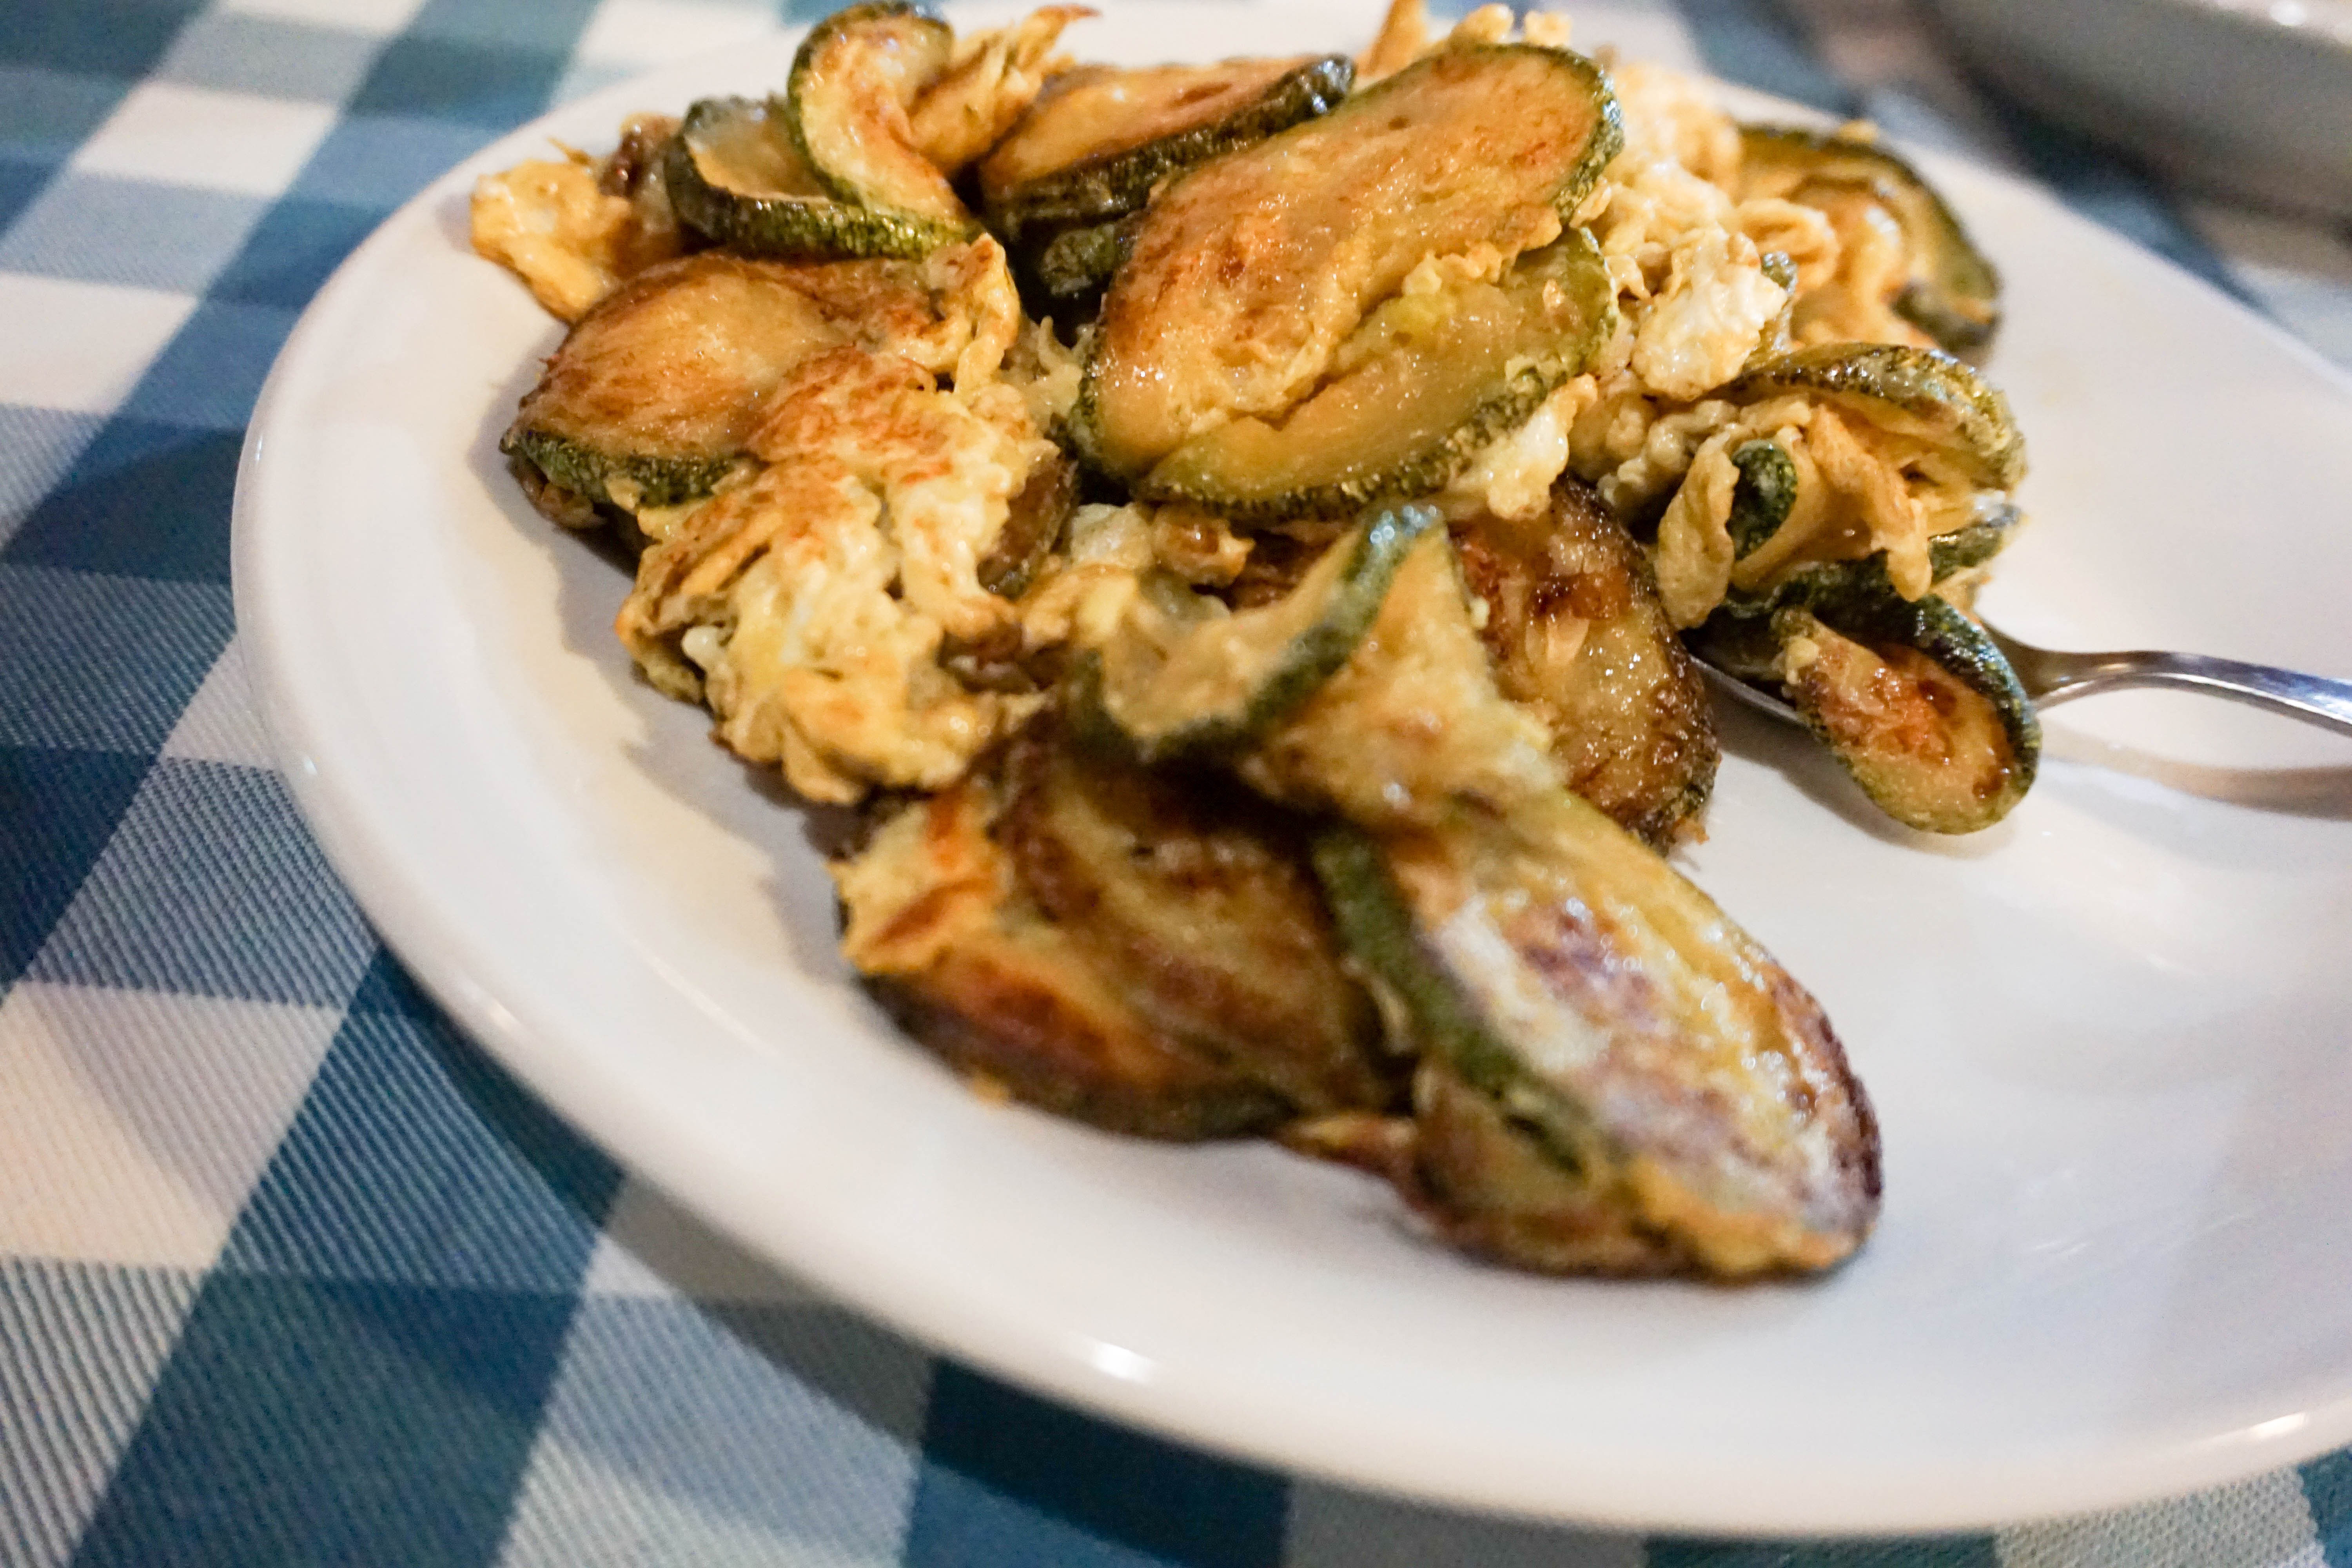 Courgettes with eggs is a typical food in Cyprus